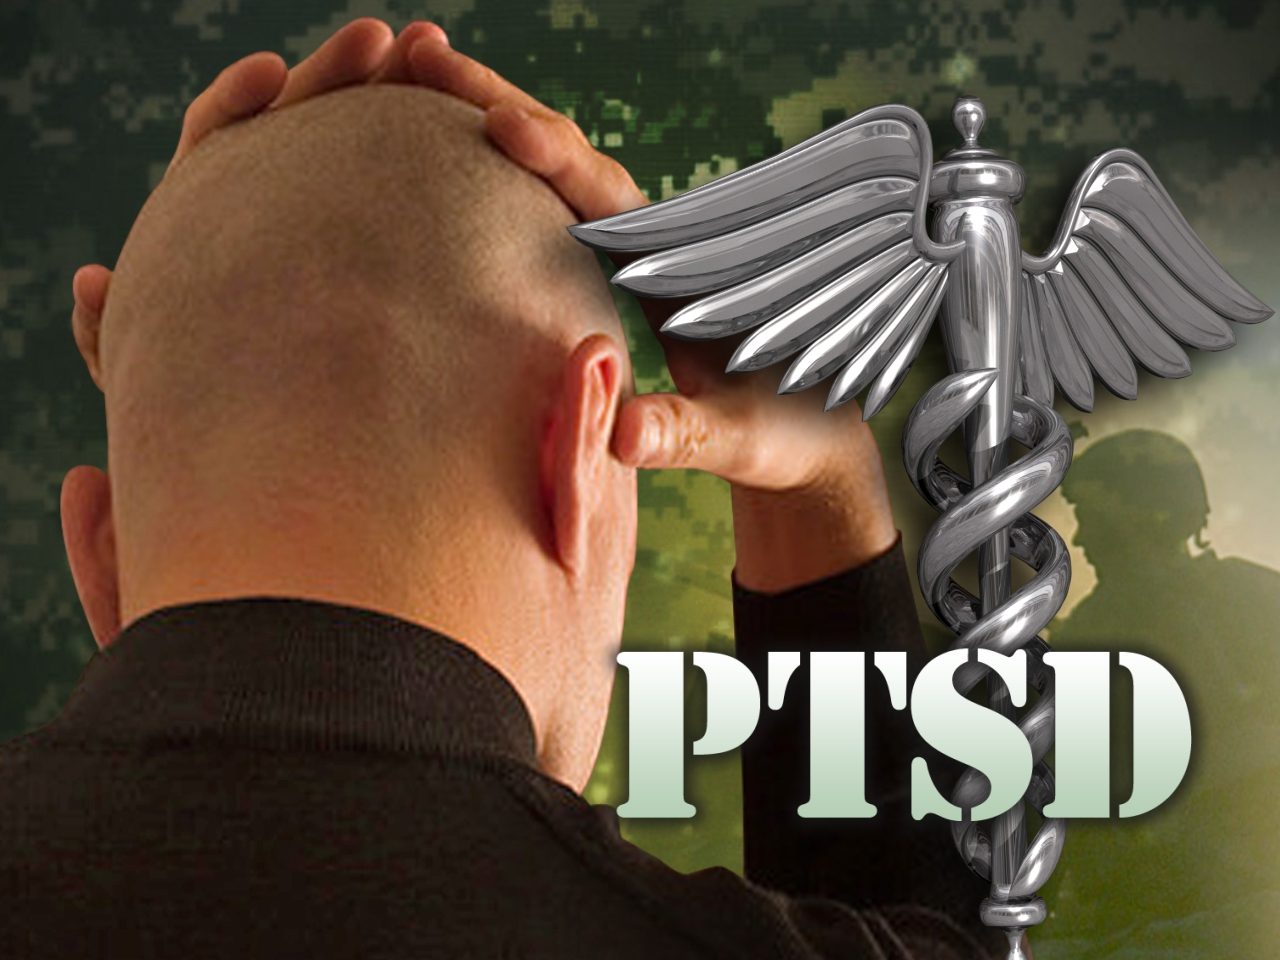 U.S. Military Veteran Suffering From PTSD Might Be Facing Death Penalty For Shooting 2 Men.